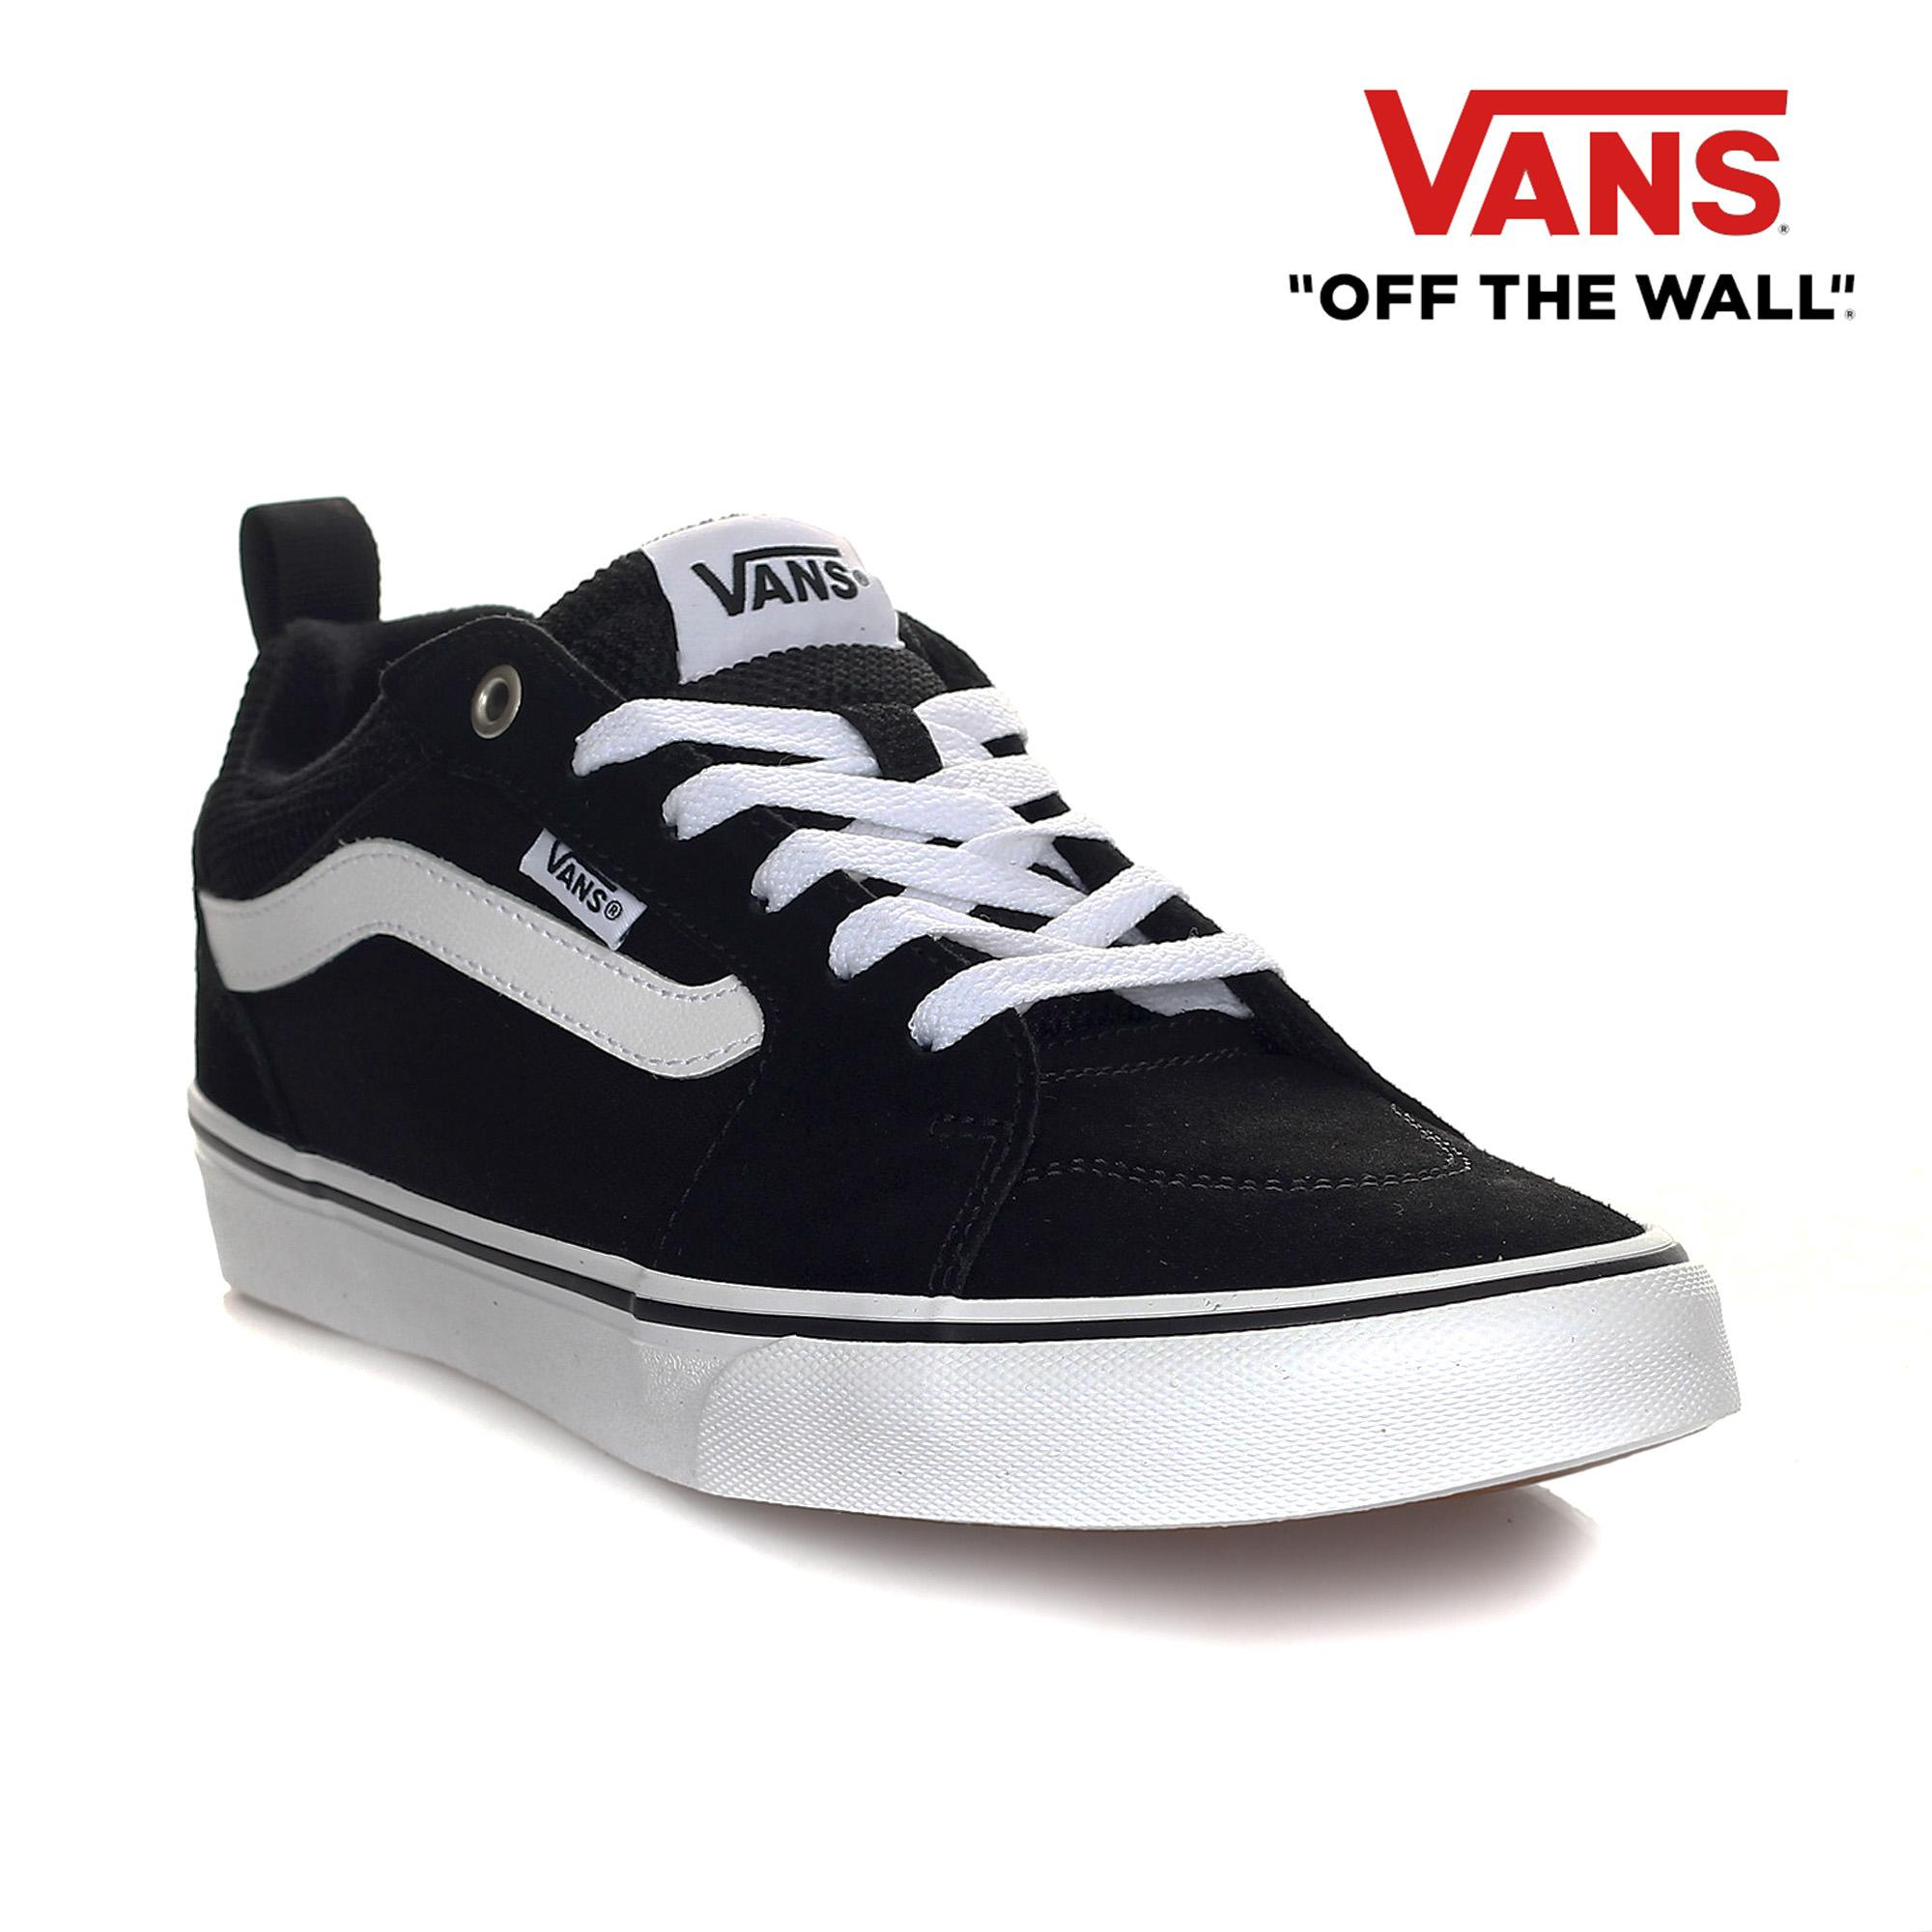 vans mens shoes price philippines